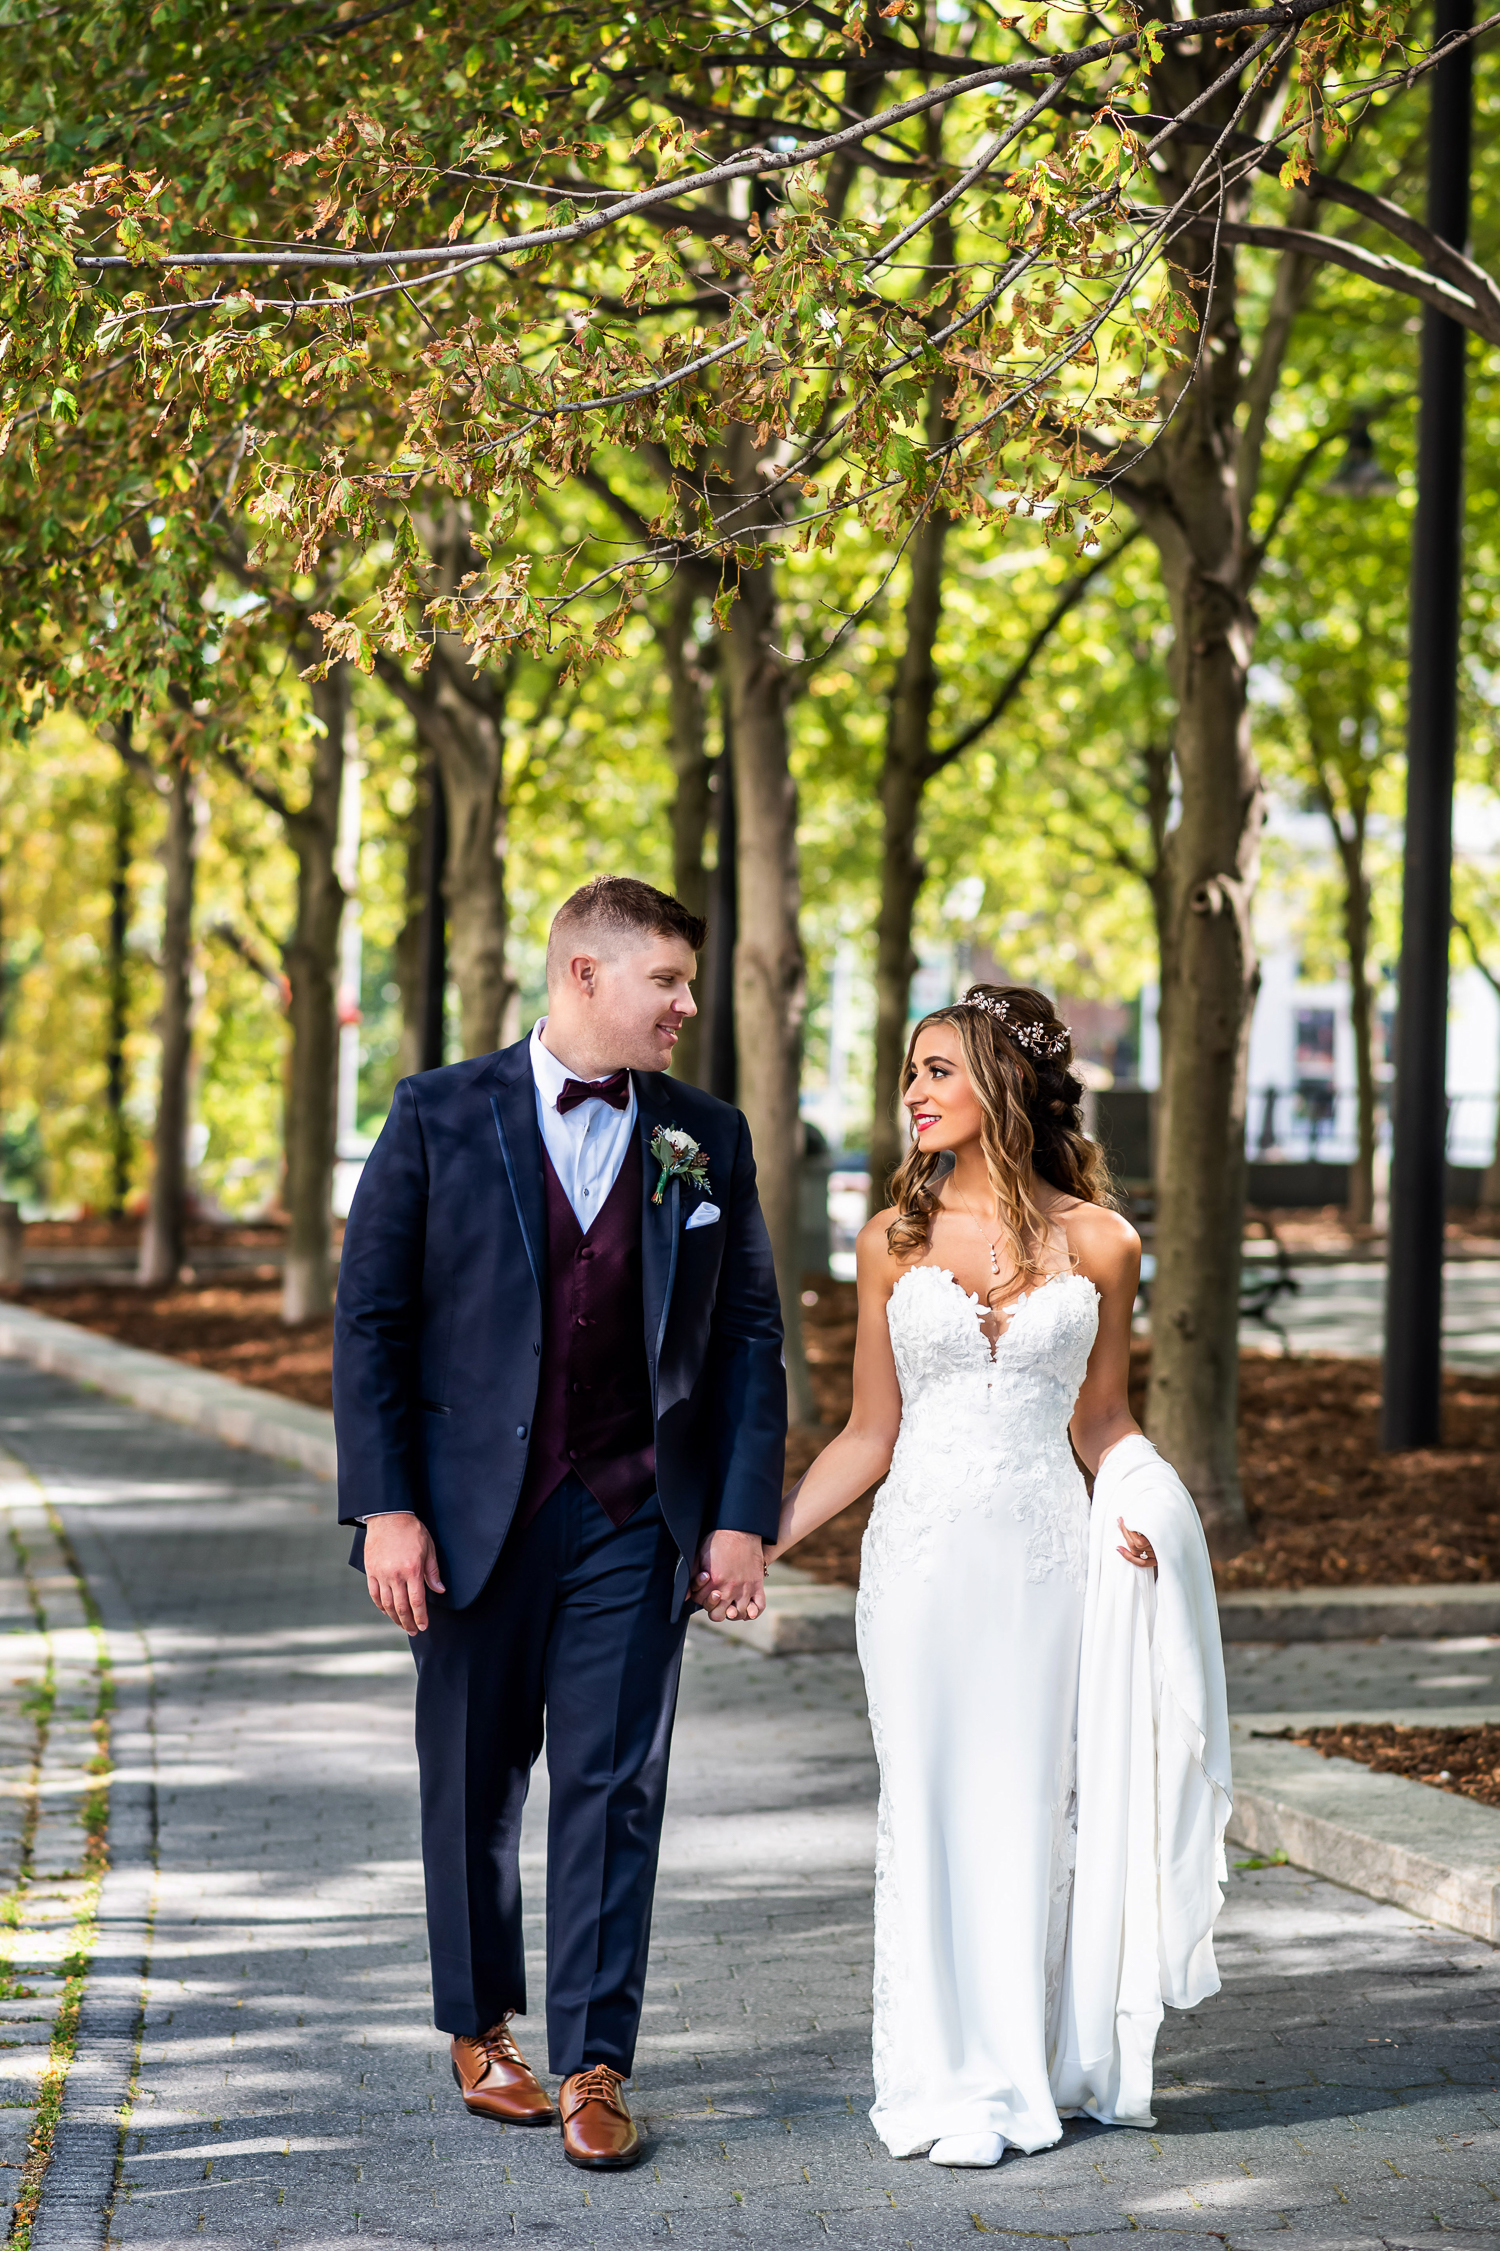 Emma_Cleary_Photo_and_Video_wedding_photos_0008